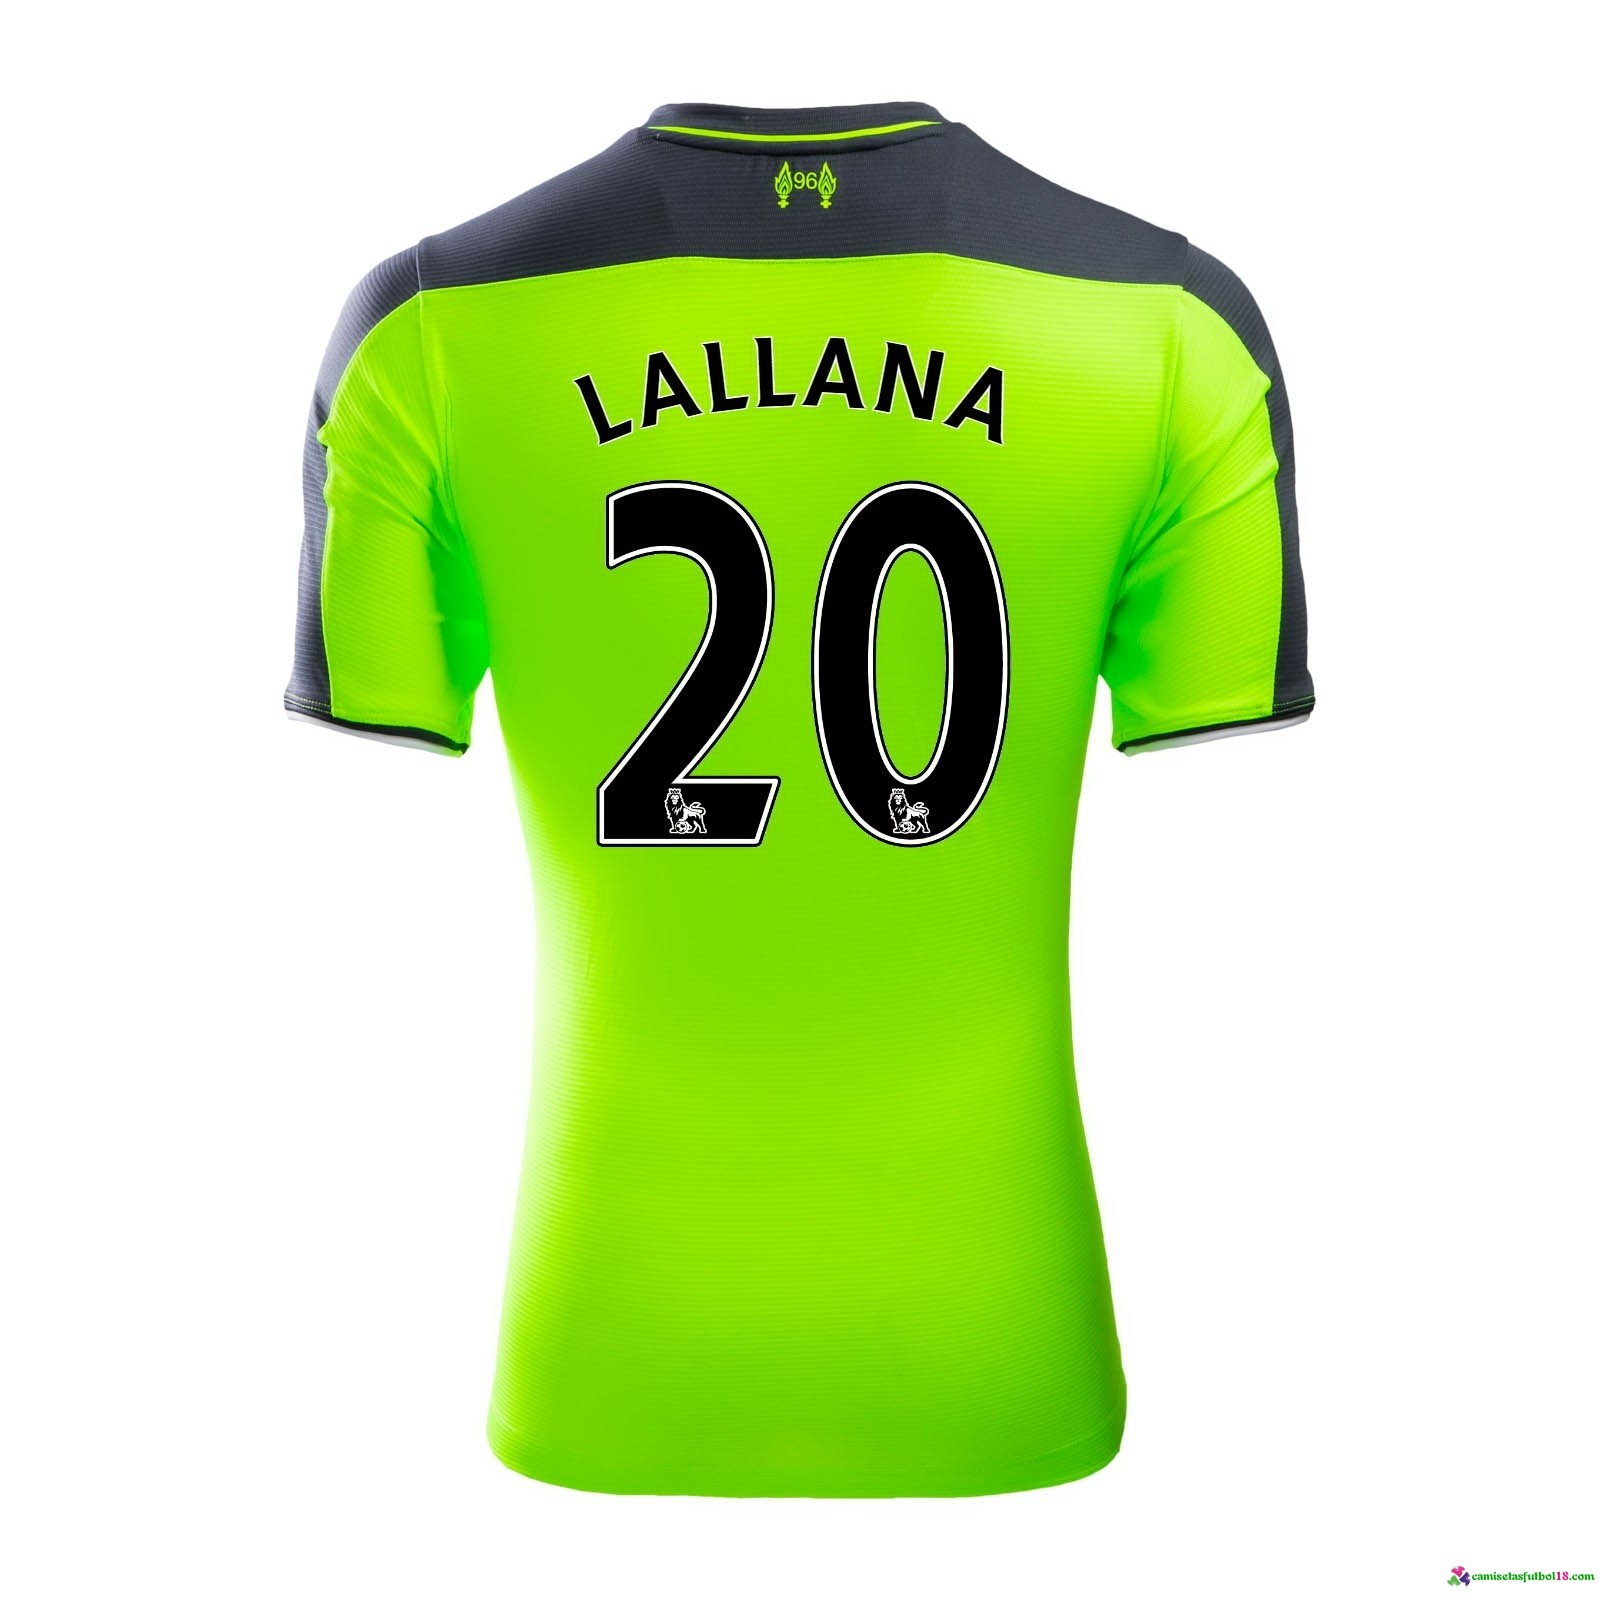 Lallana Camiseta 3ª Kit Liverpool 2016 2017